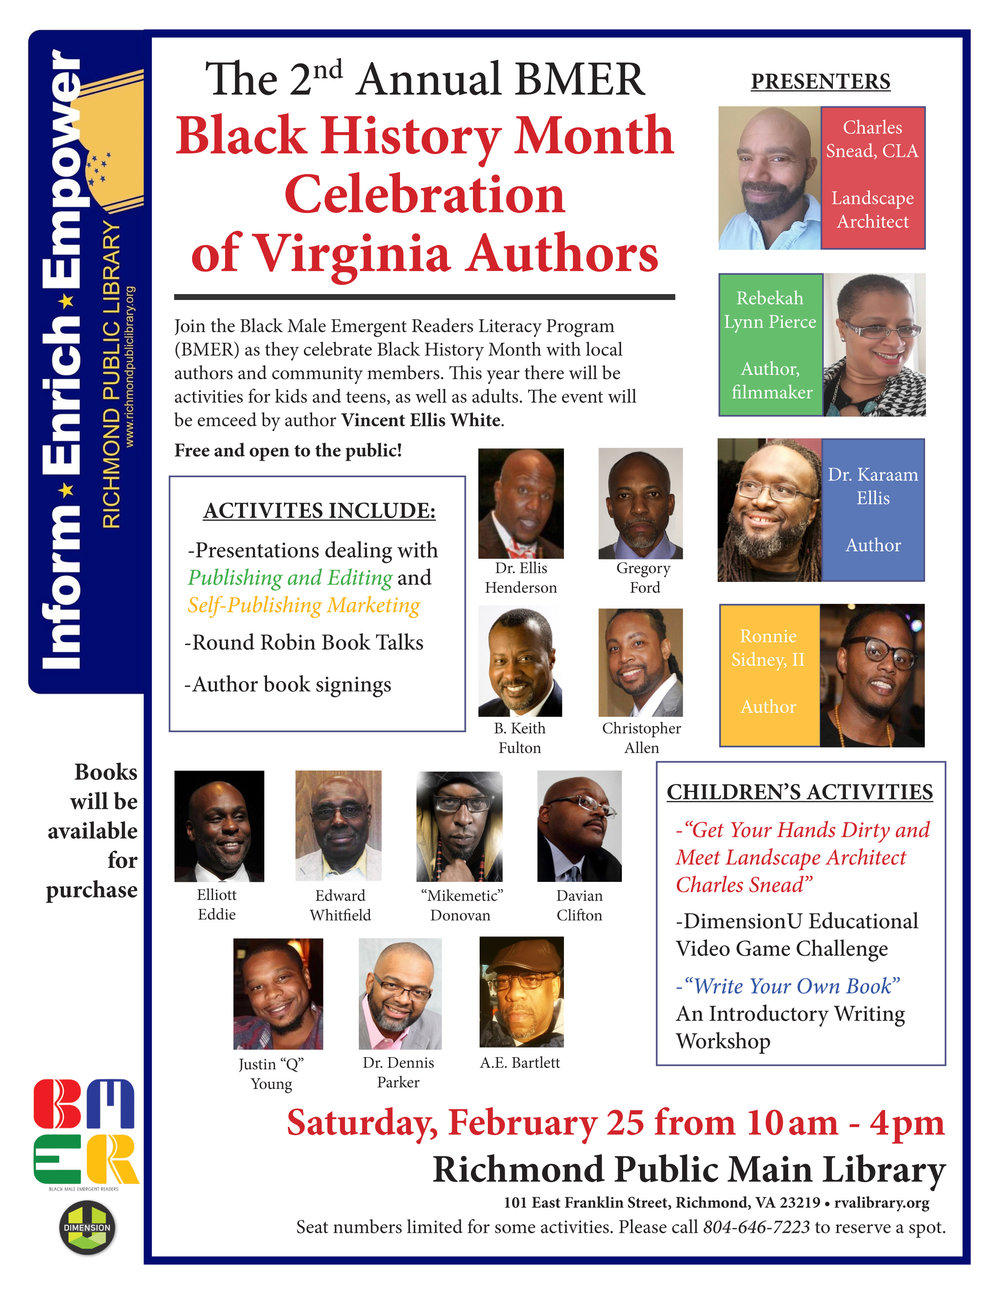 2nd Annual BMER Author Celebration